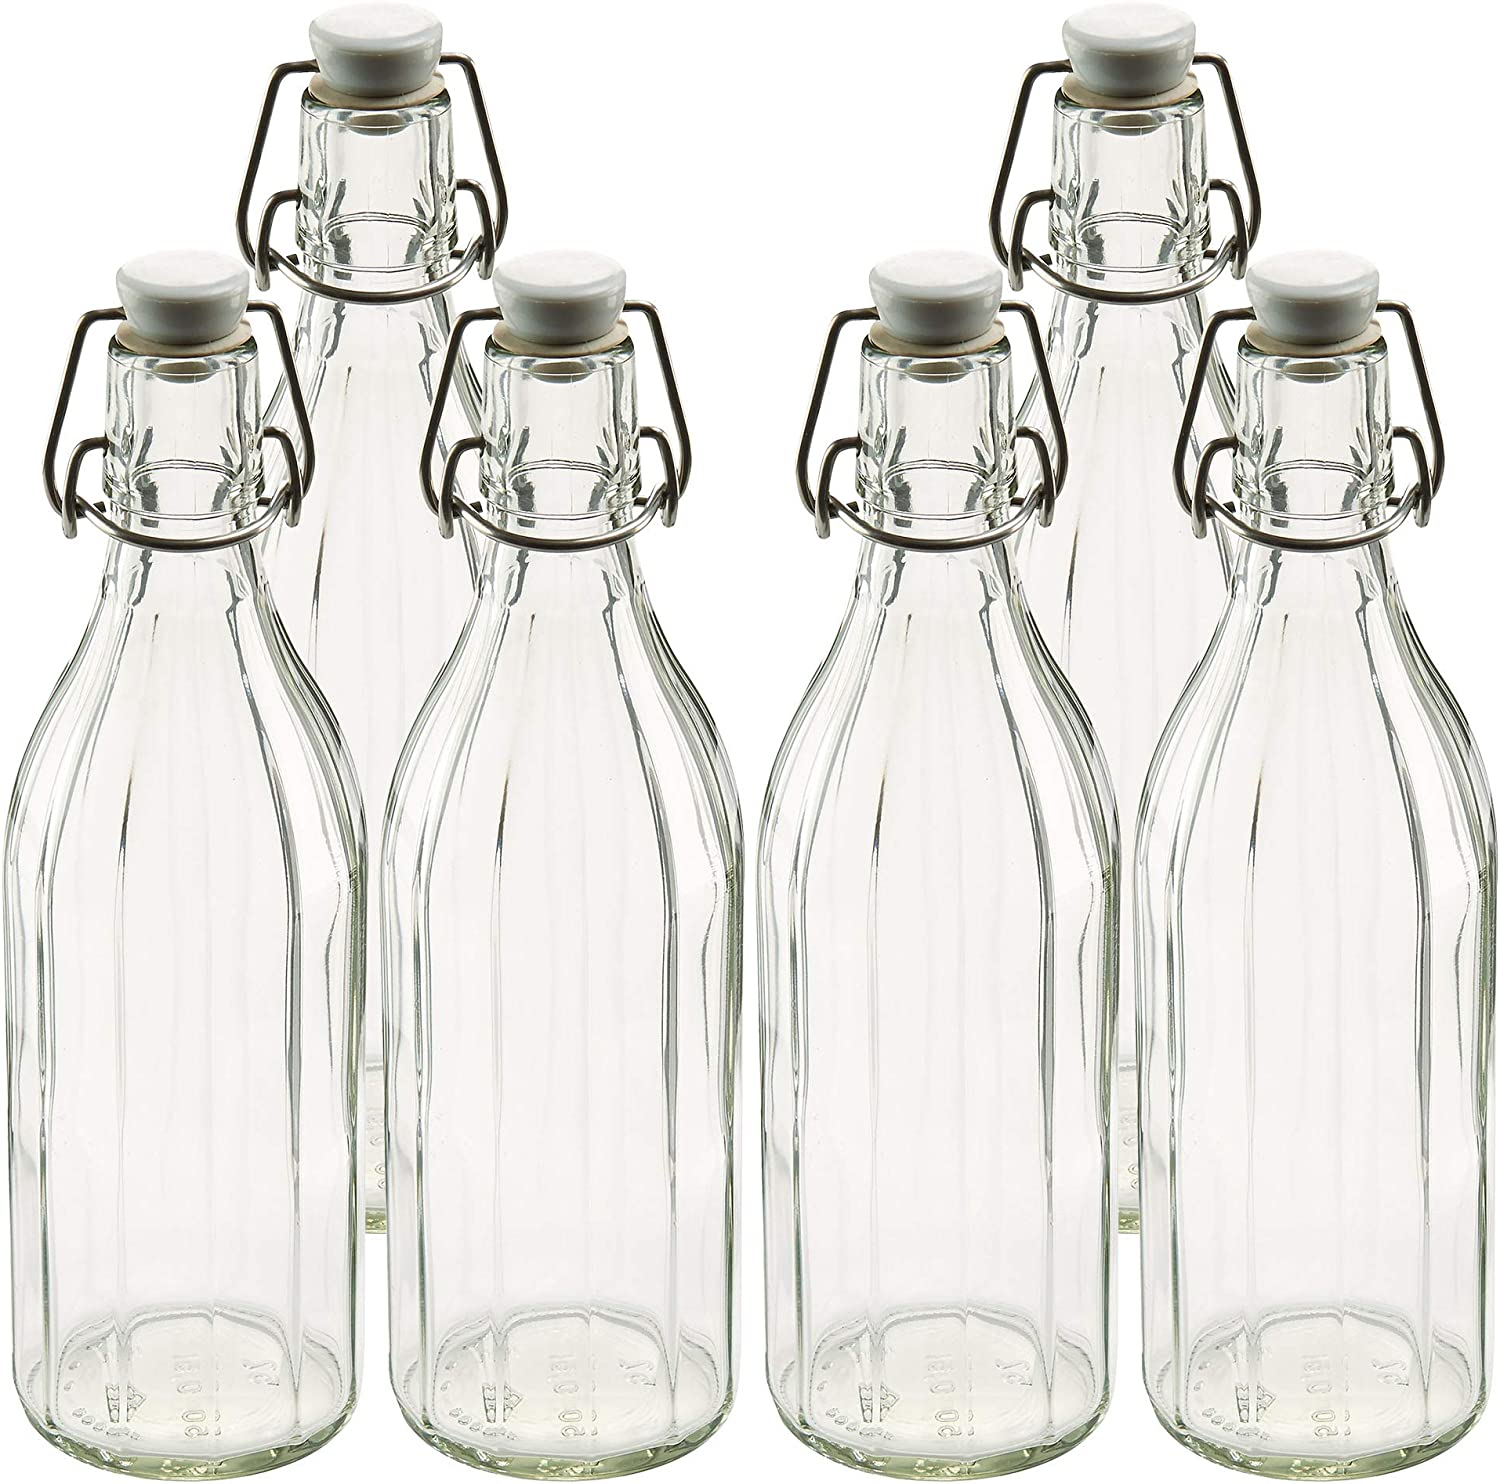 Dealing full price reduction Leifheit Clear 6 Pack of Reusable Glass Bottles Shackle Loc Ranking TOP10 with